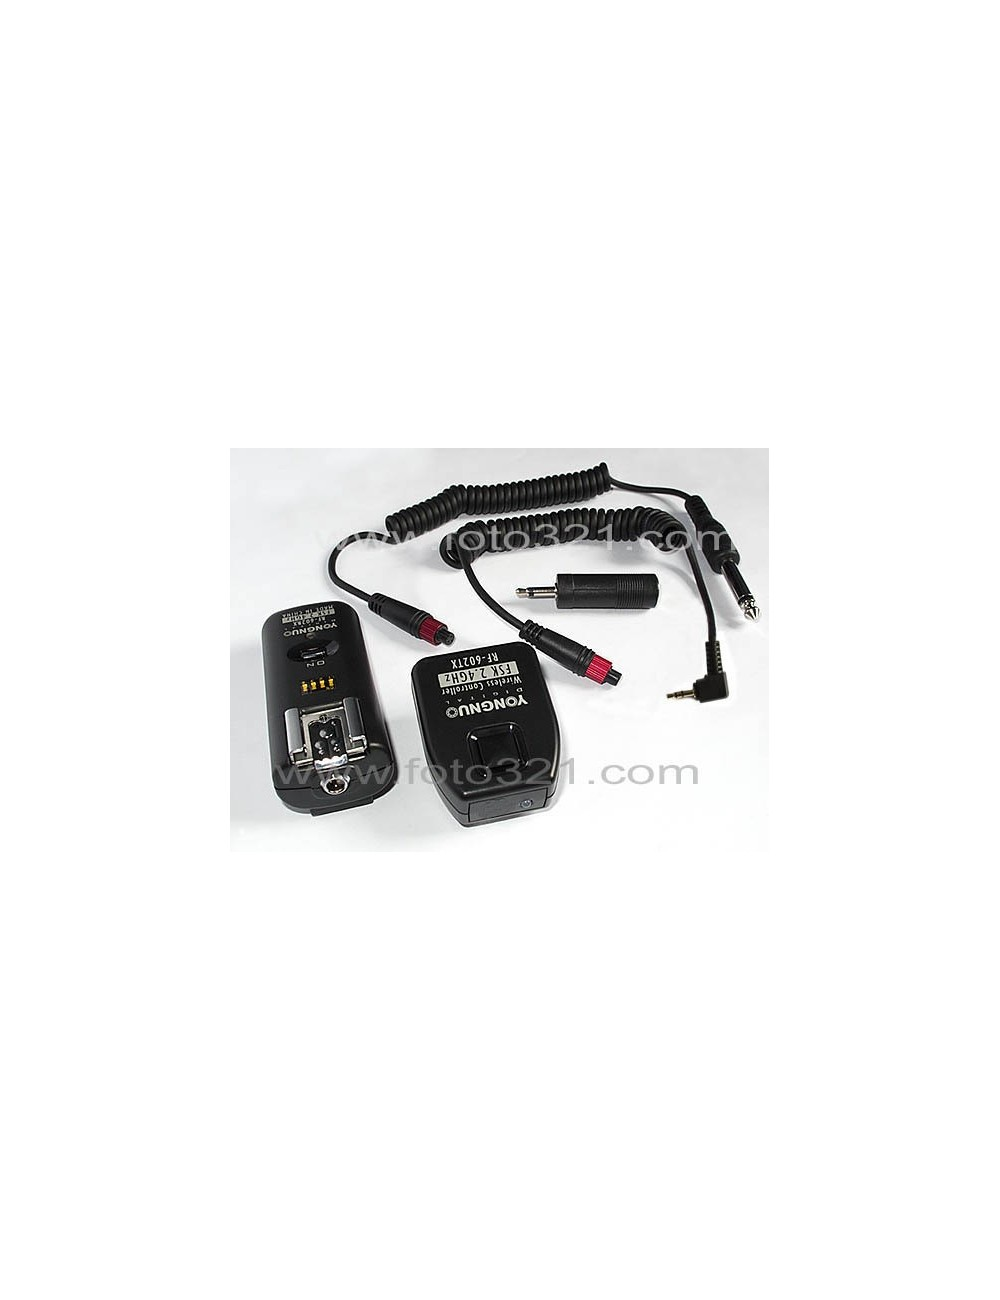 De datos USB sync//photo transferencia Lead Cable para Canon Eos 20d